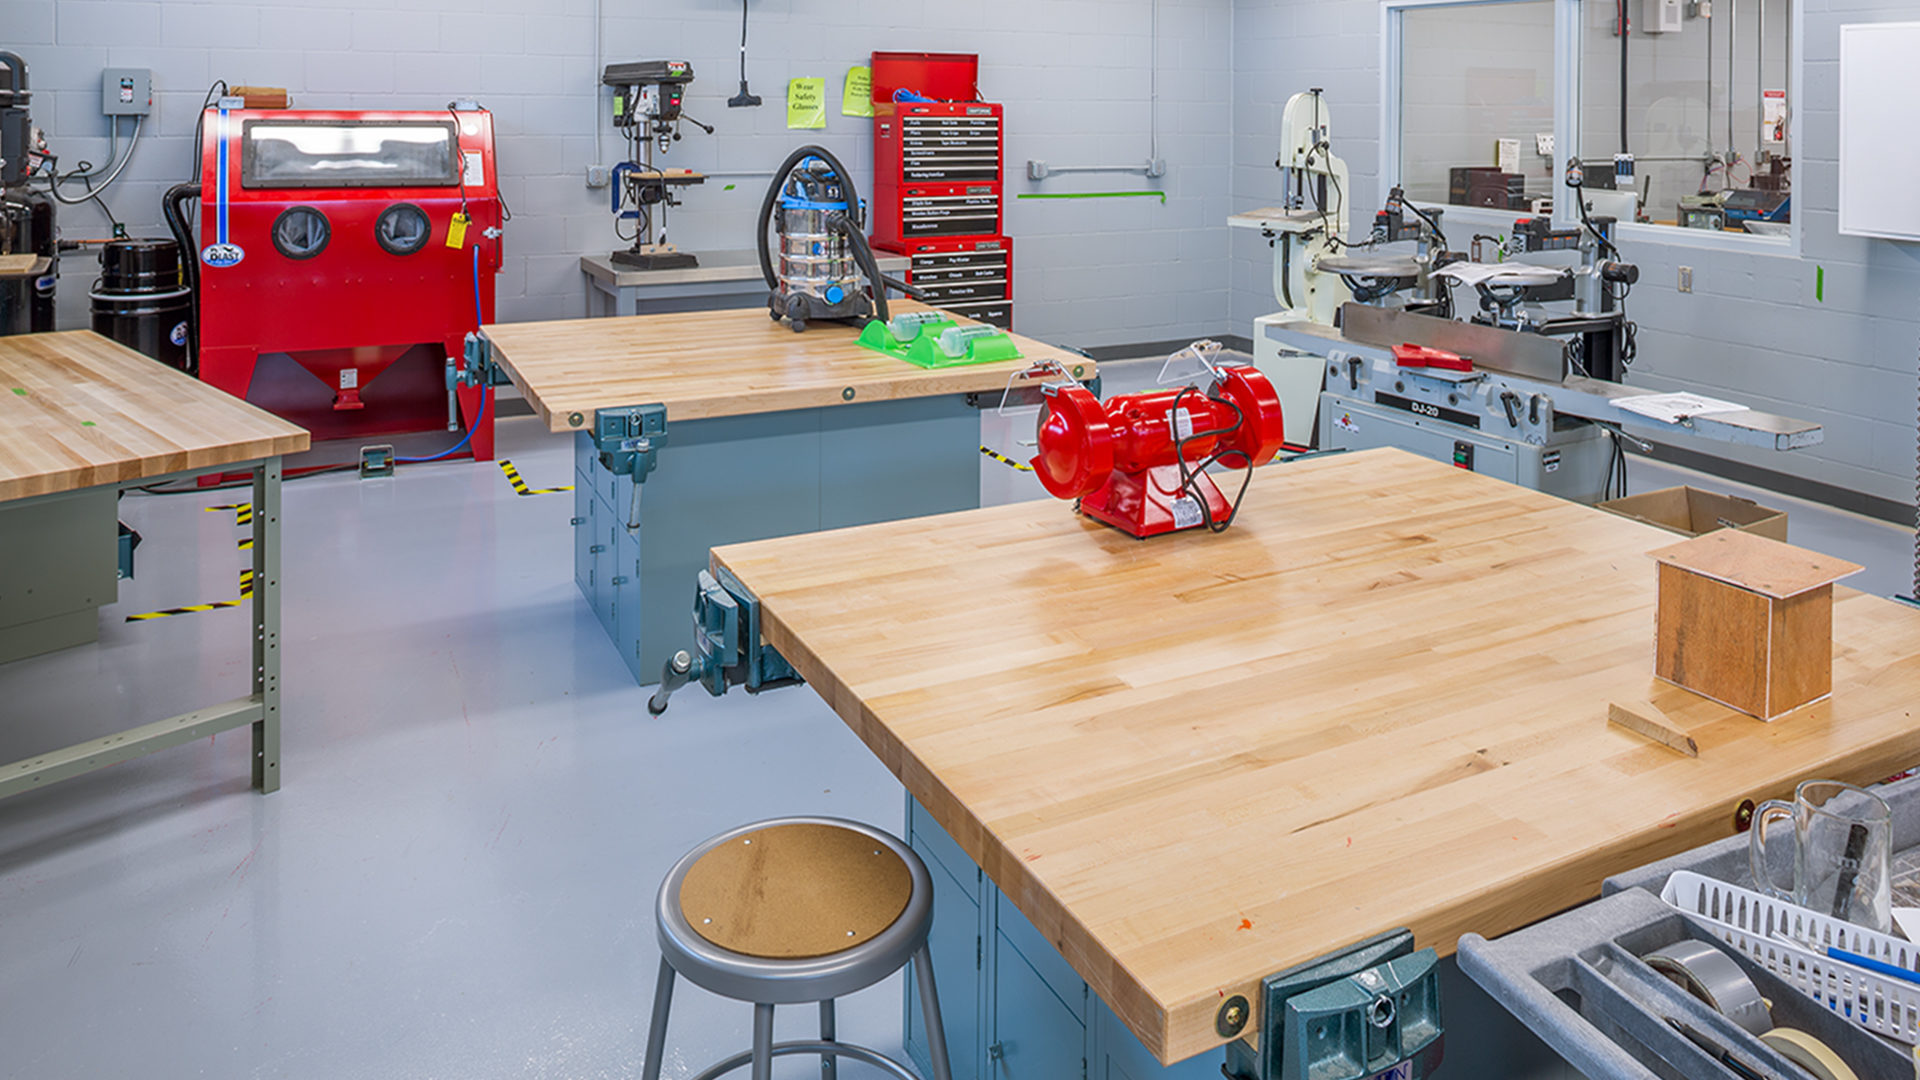 Erik Ramstad Middle School Interior Industrial Technology Class Room